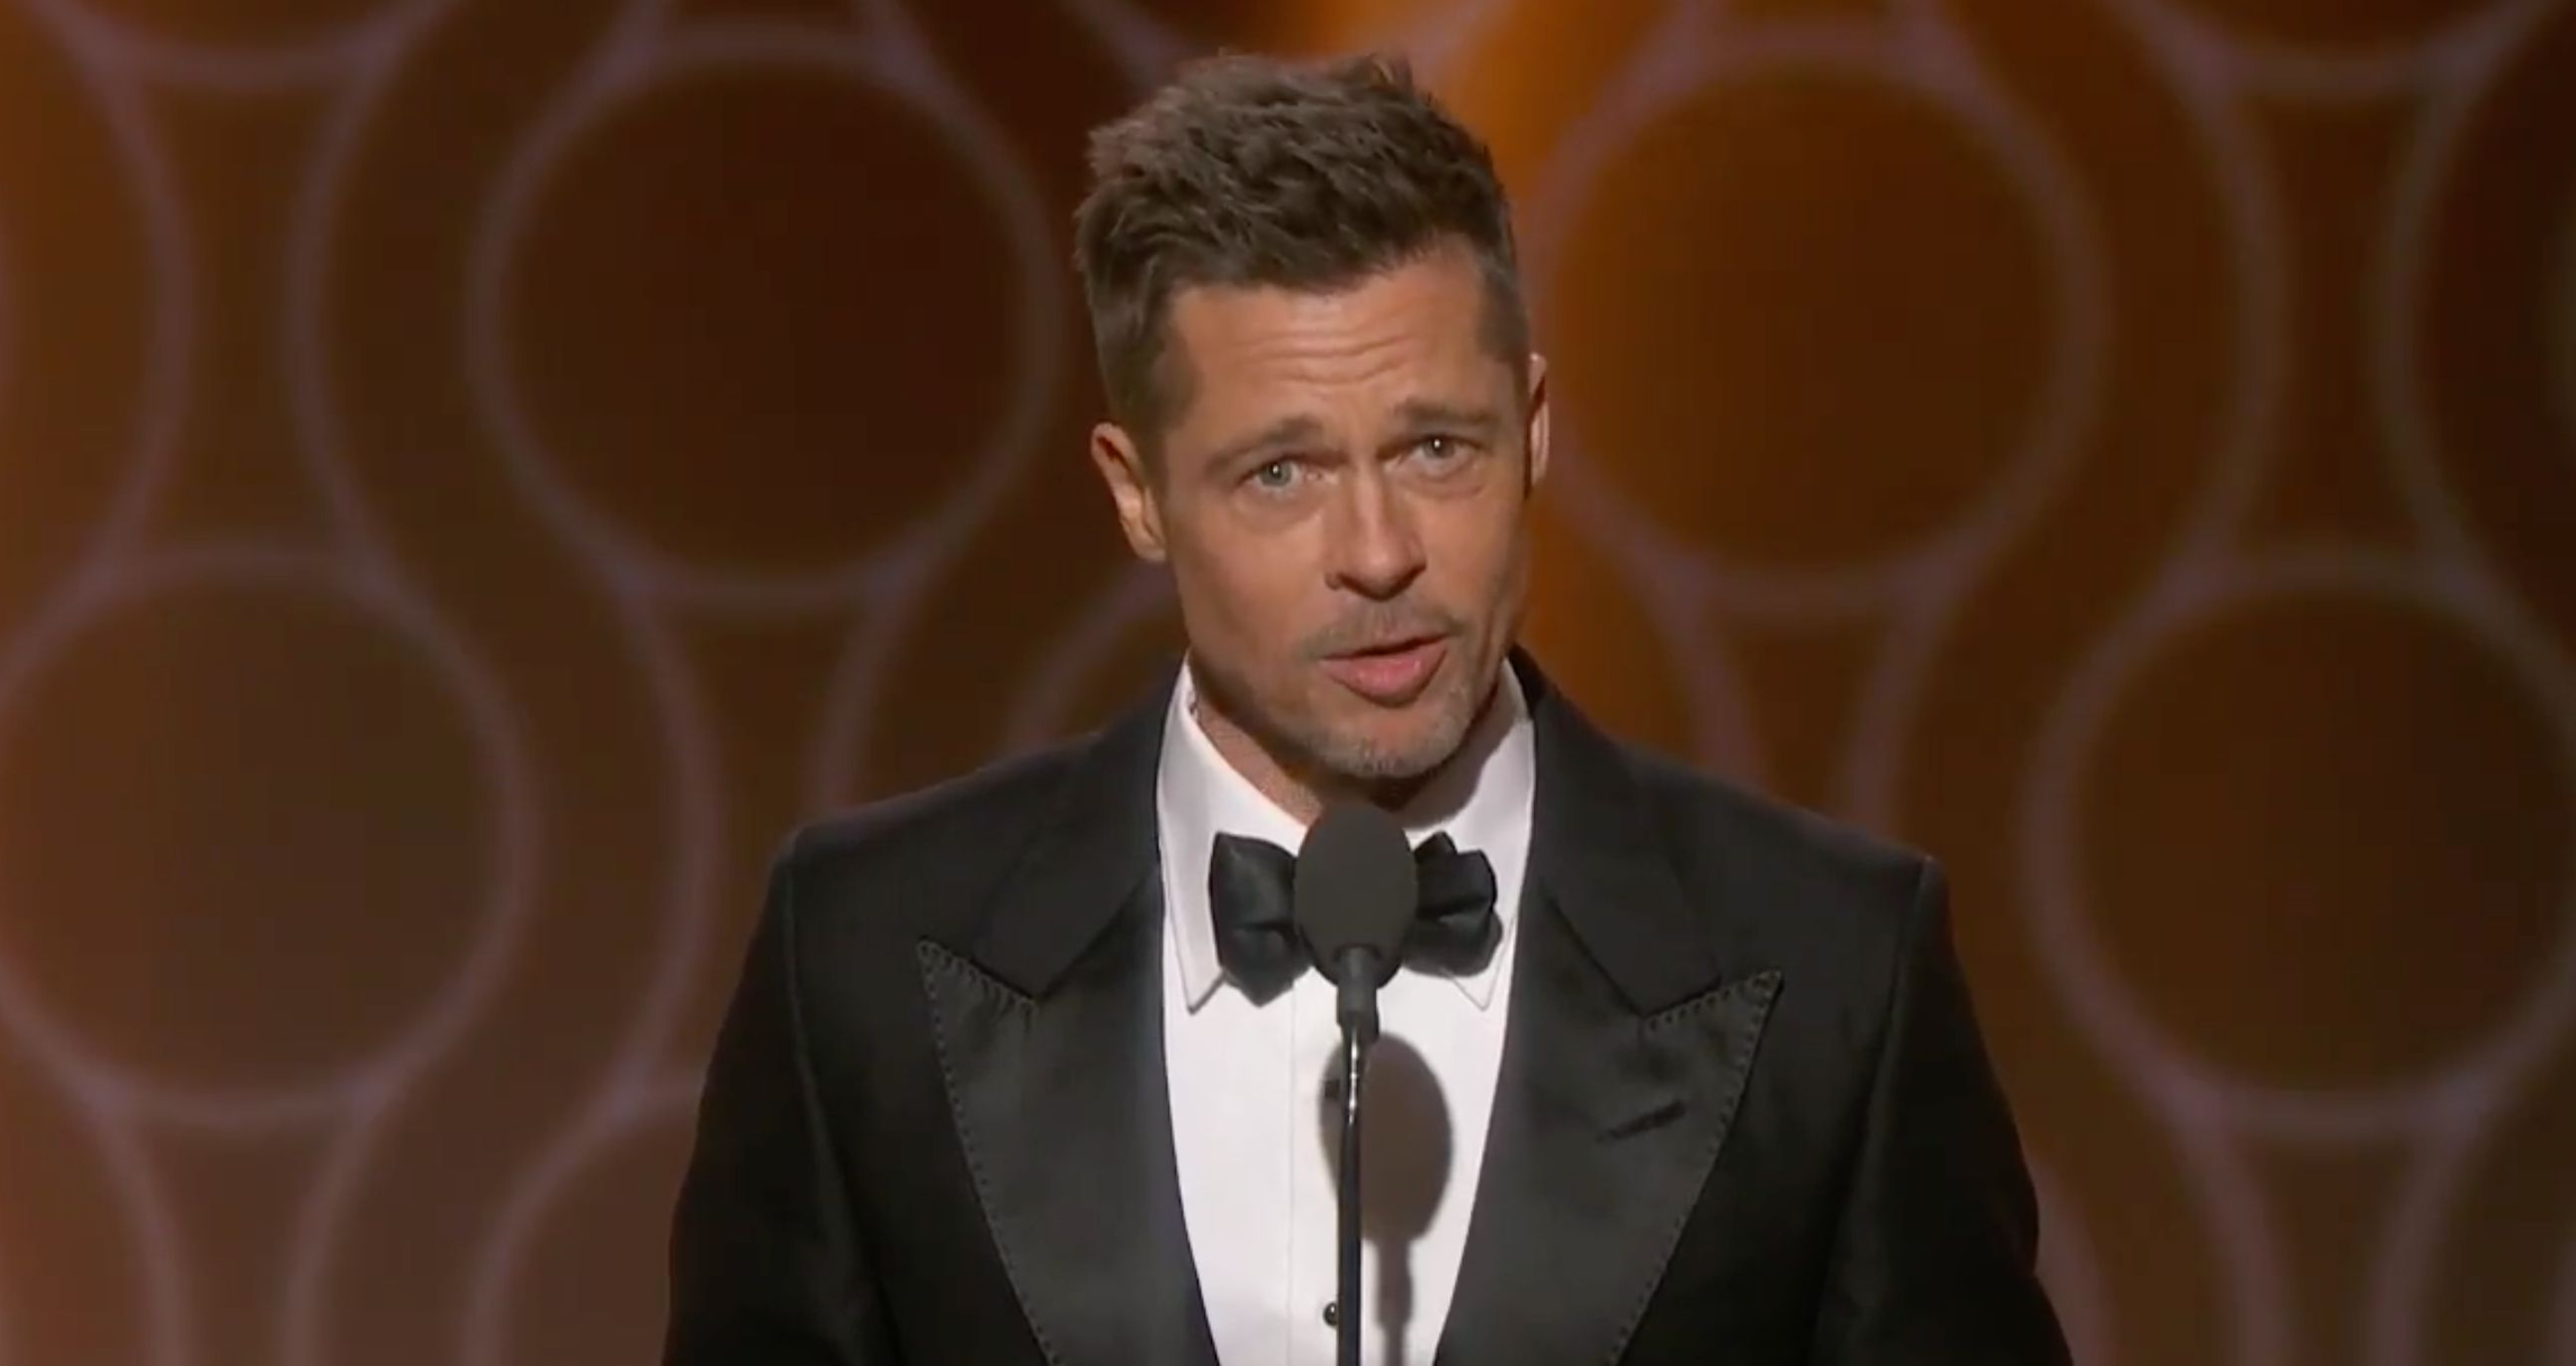 Hollywood Still Loves Brad Pitt, Judging By This Massive Round Of Applause At The Golden